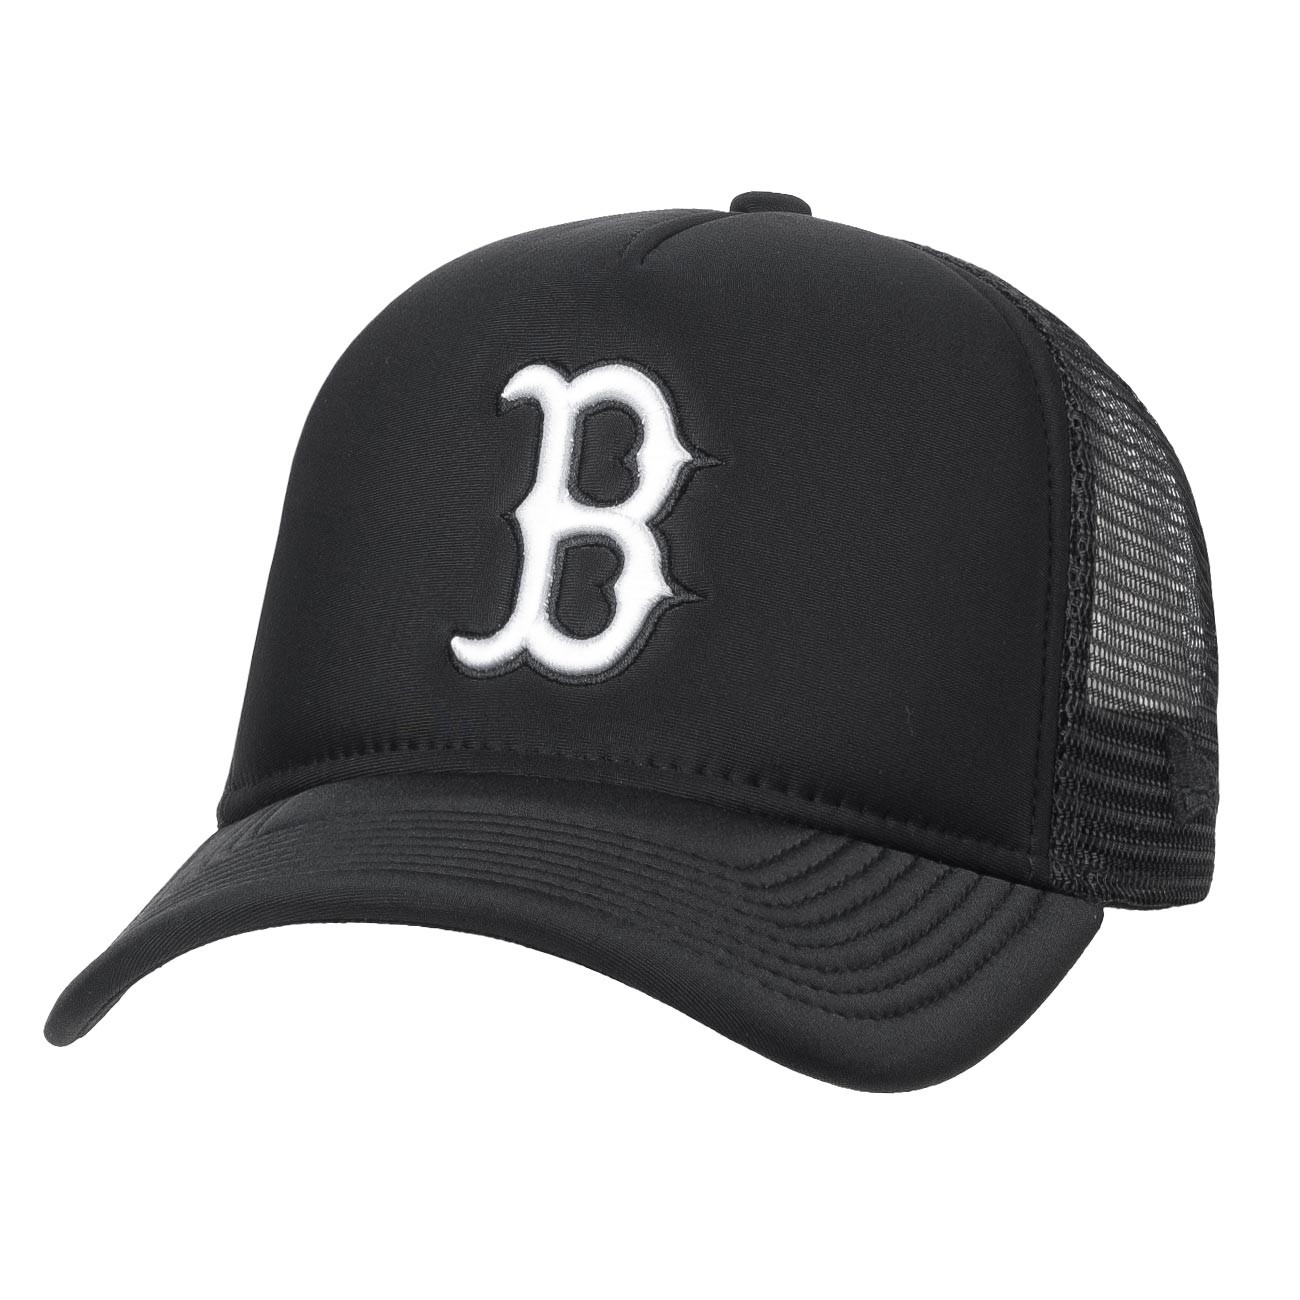 Kšiltovka New Era Boston Red Sox Aframe Trucker black optic white ... fdabae3705